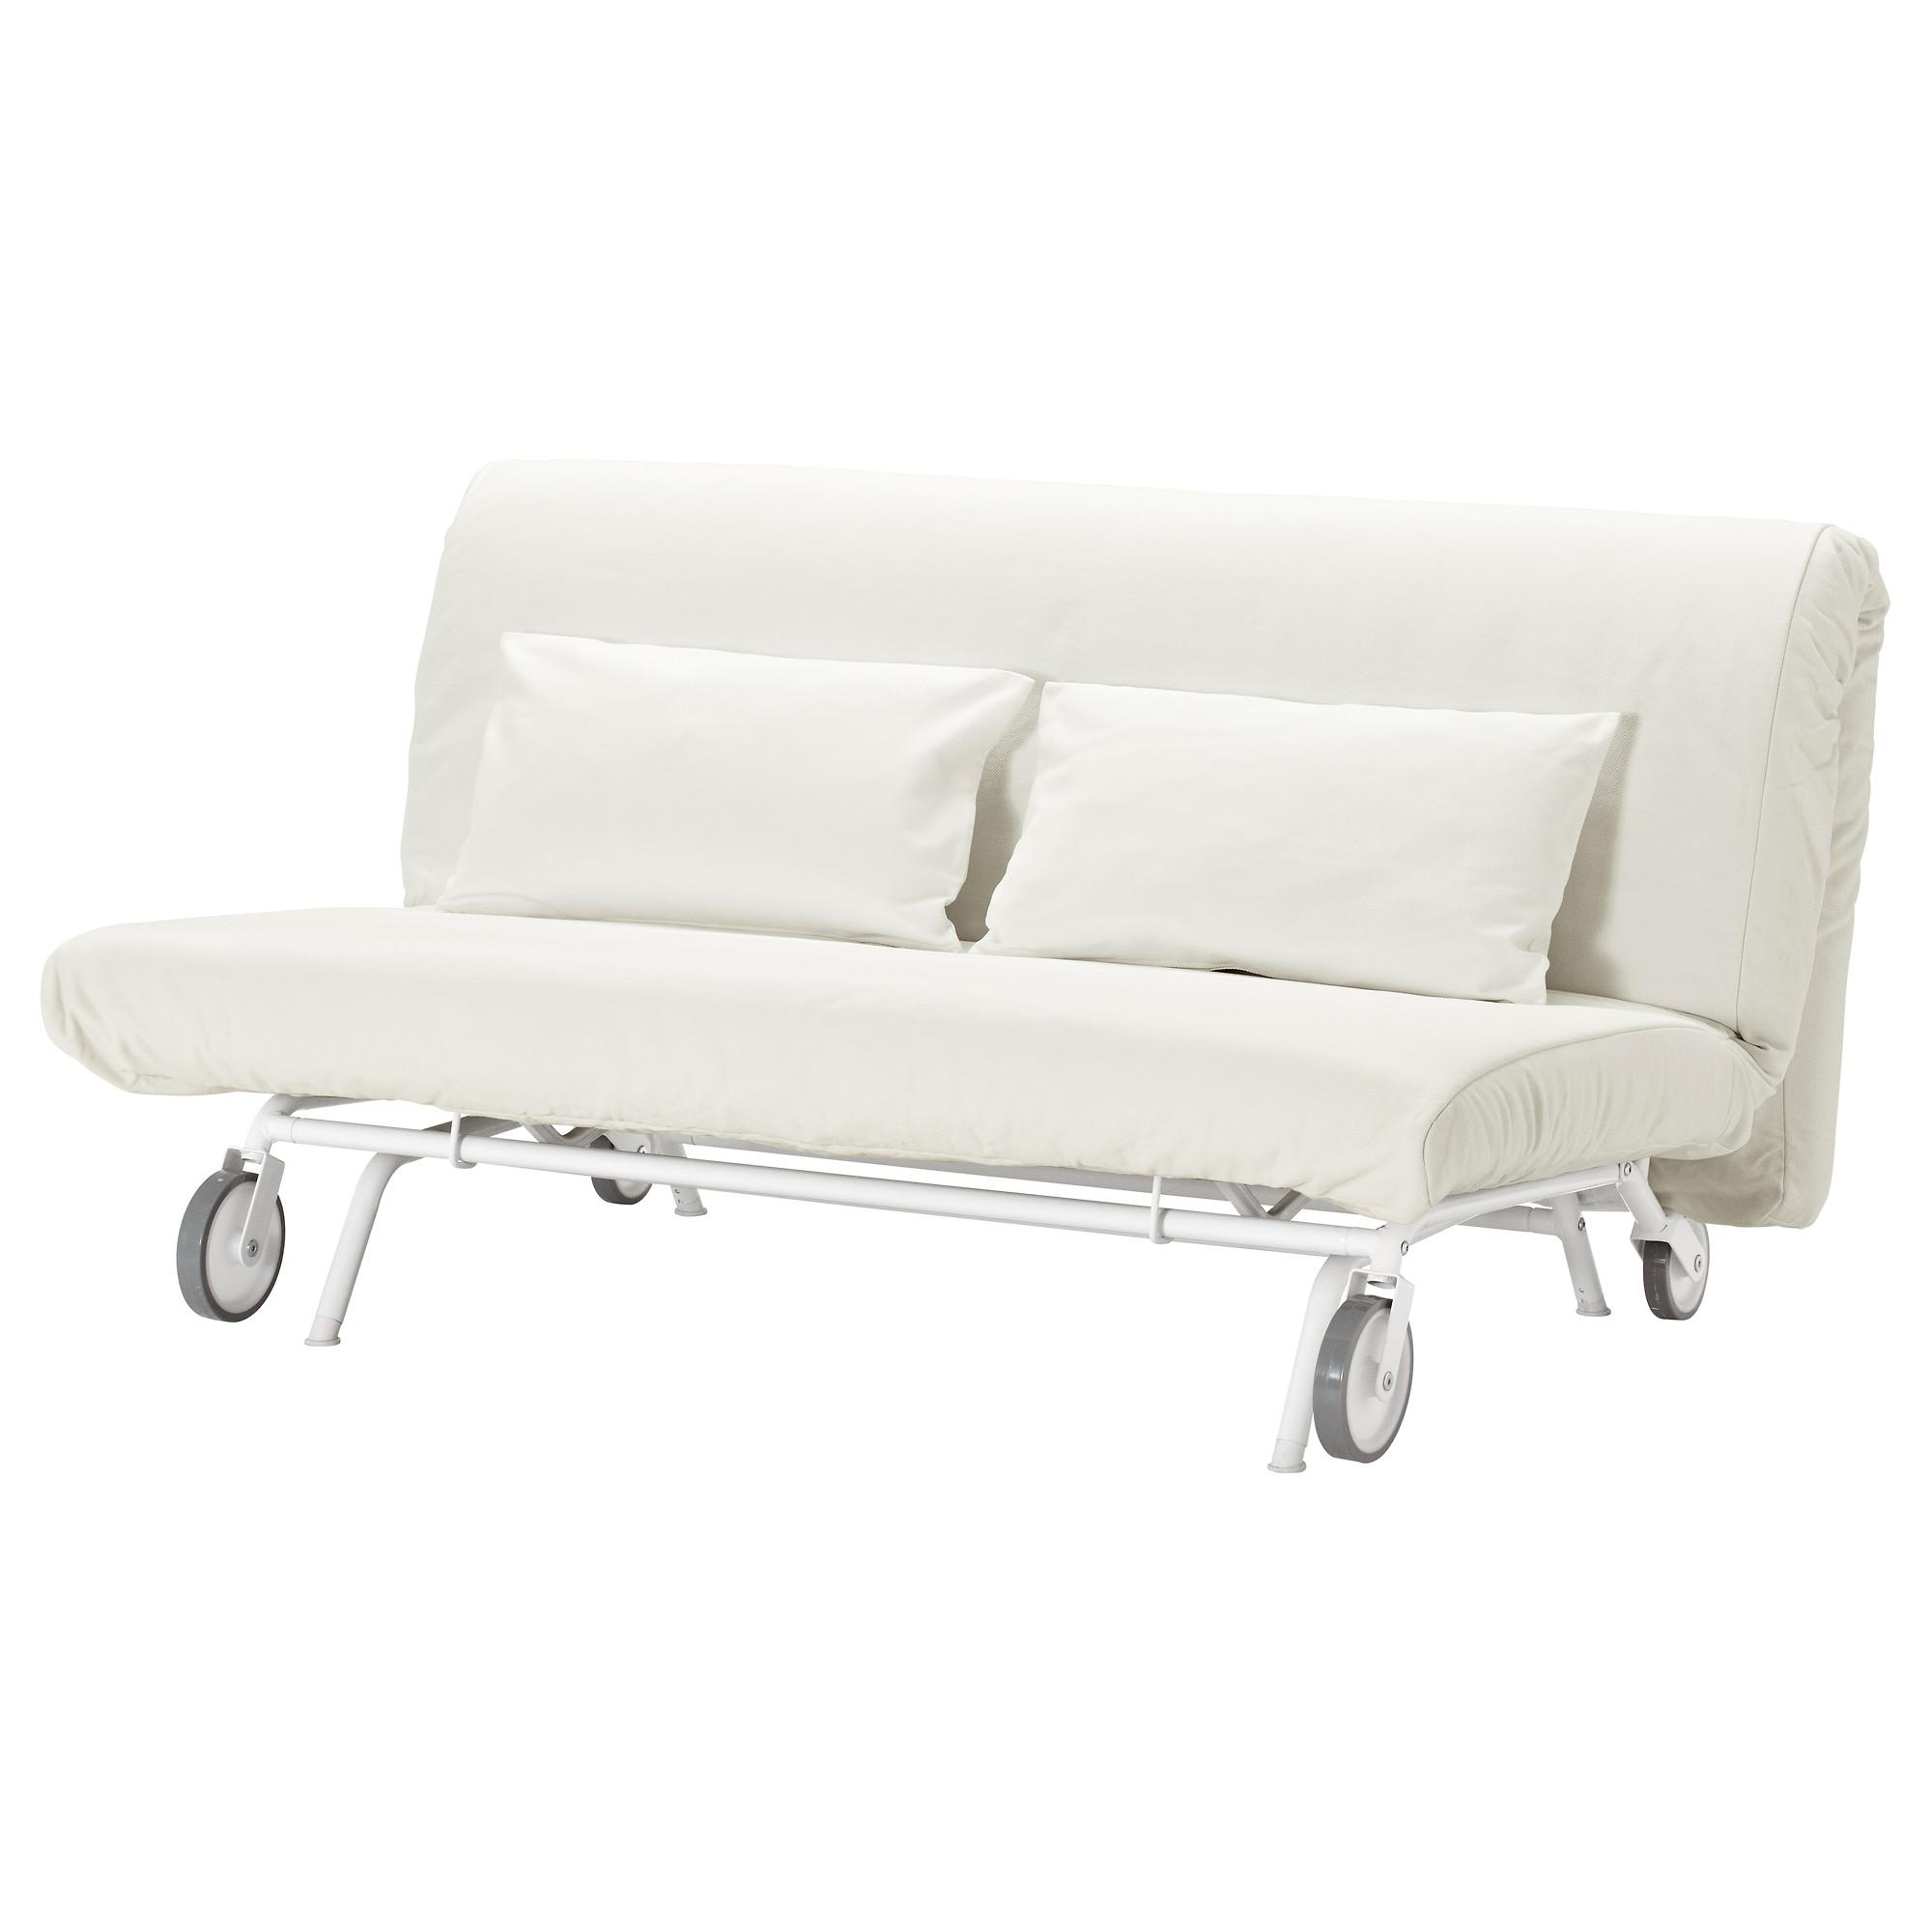 Ikea Ps Håvet Two Seat Sofa Bed Gräsbo White – Ikea Intended For Sofa Chairs Ikea (Image 11 of 20)